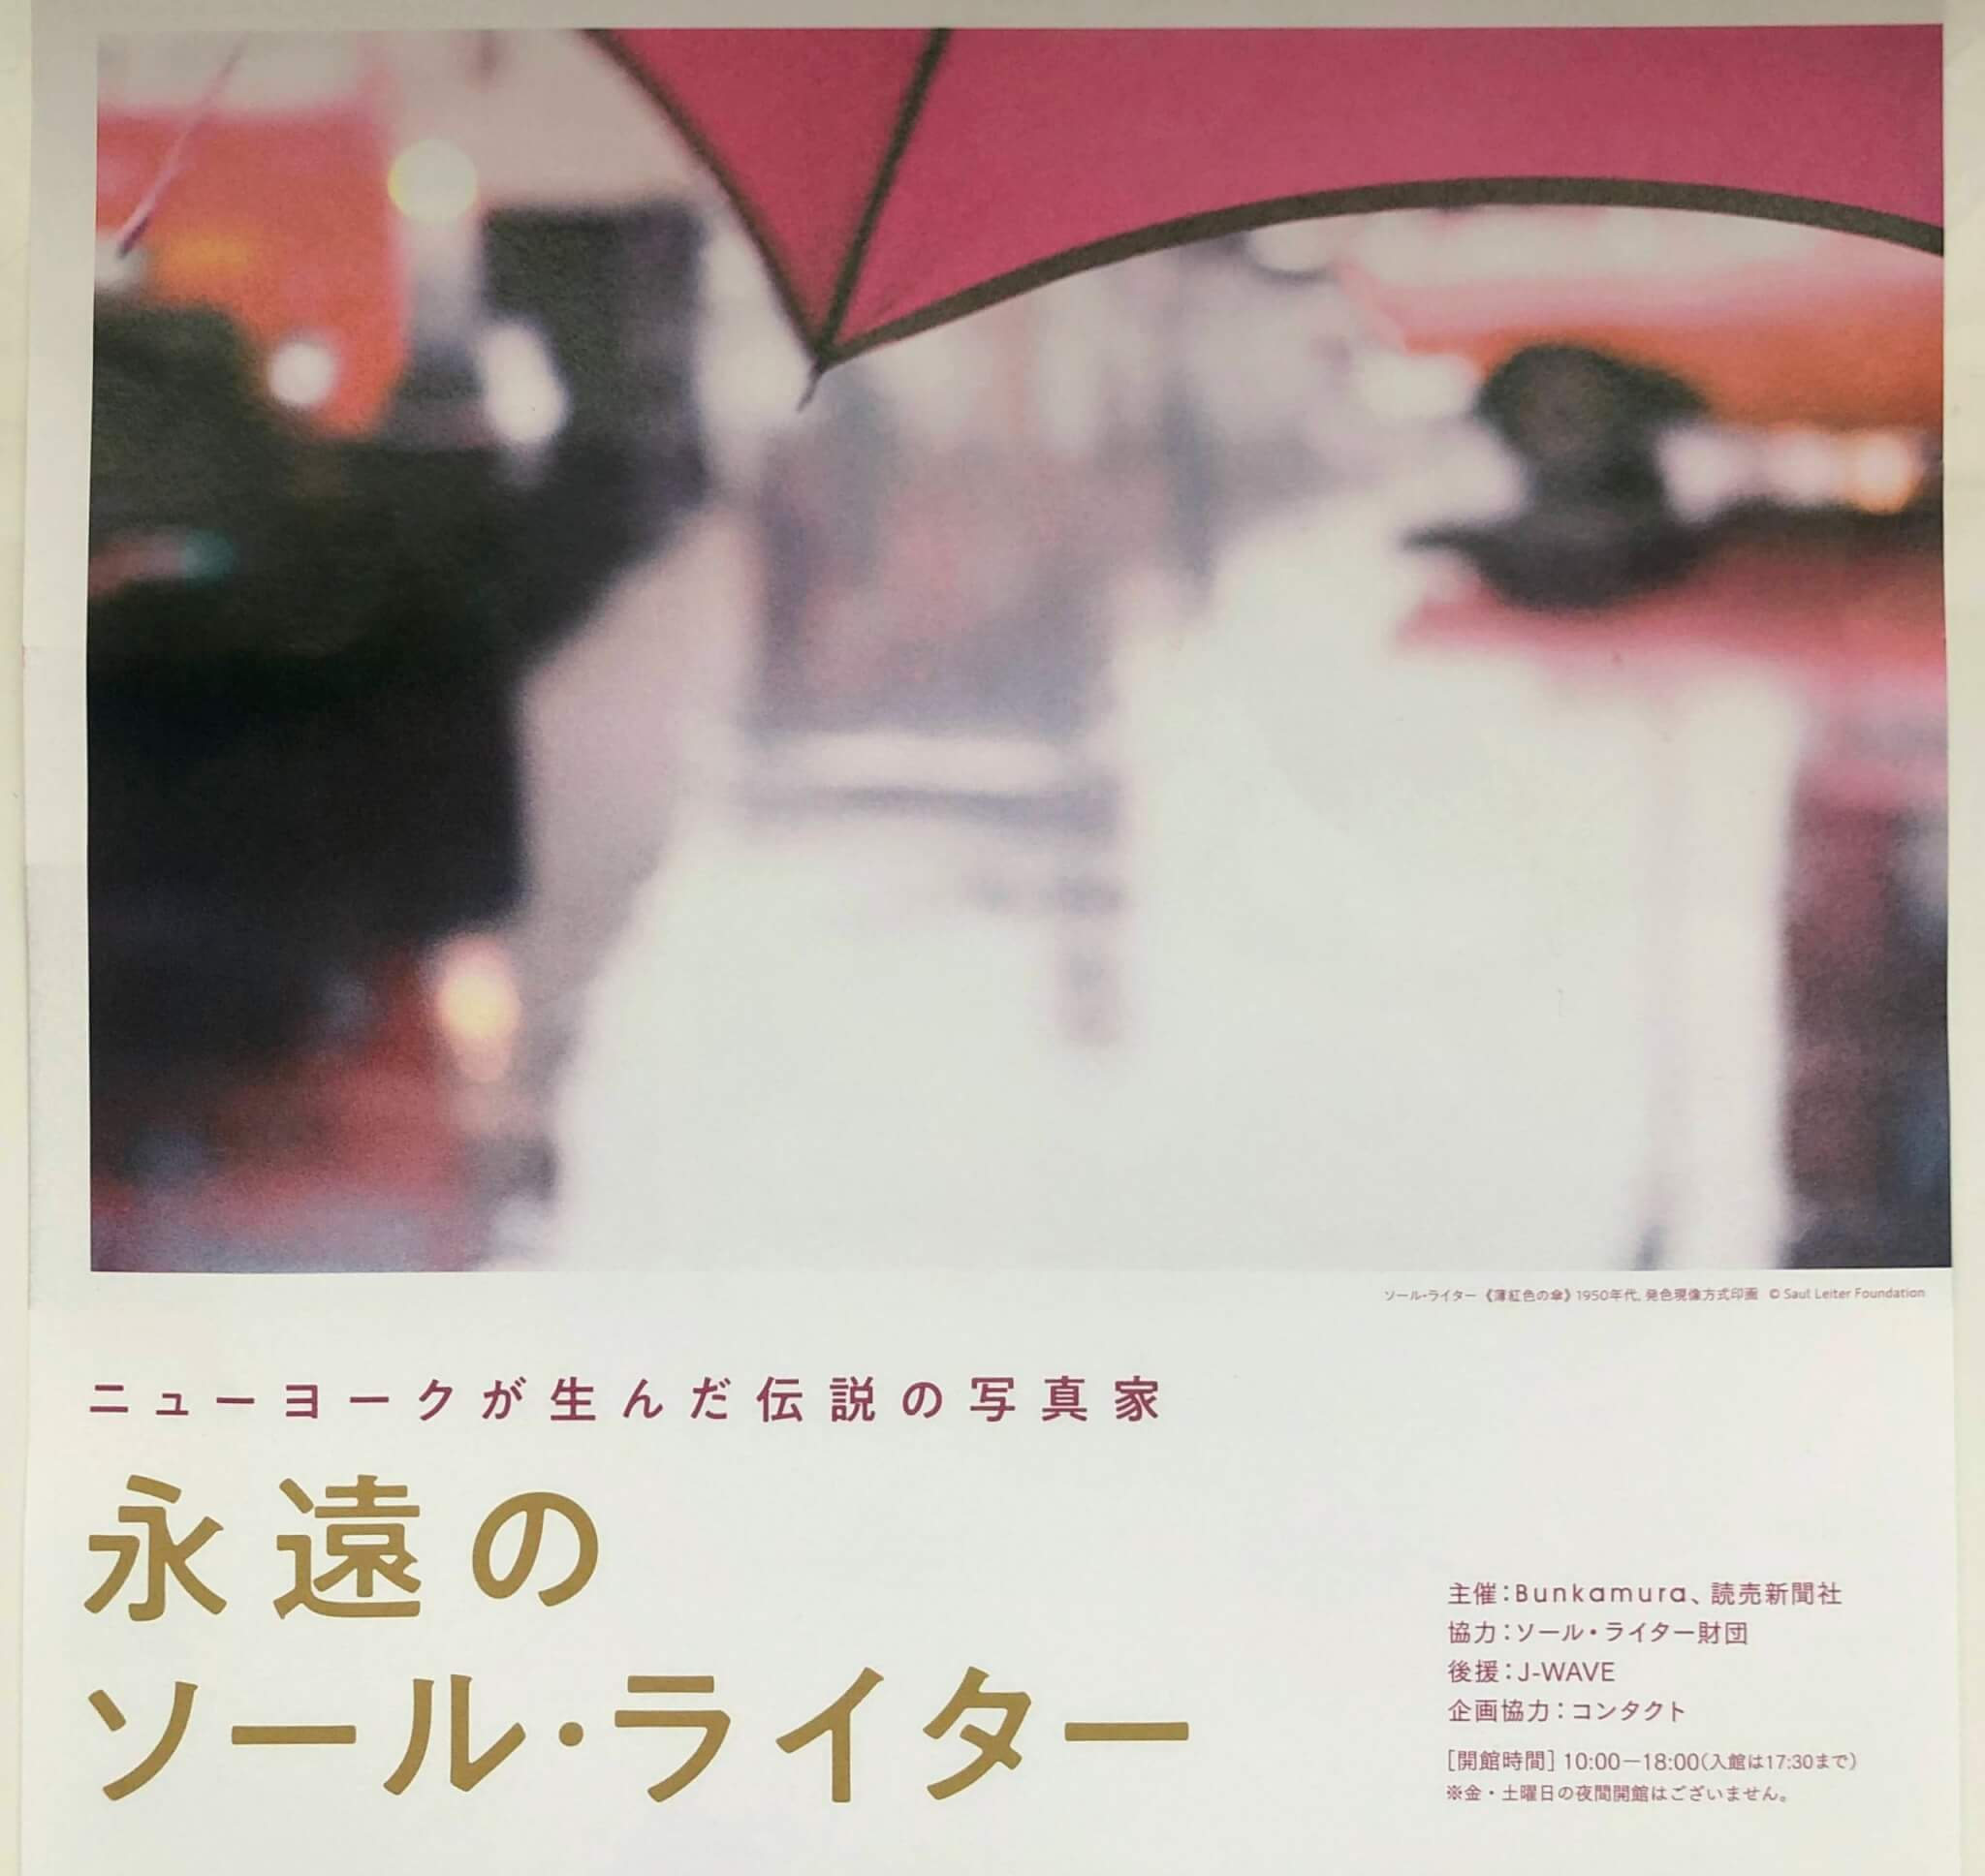 The 'Forever Saul Leiter' Exhibition